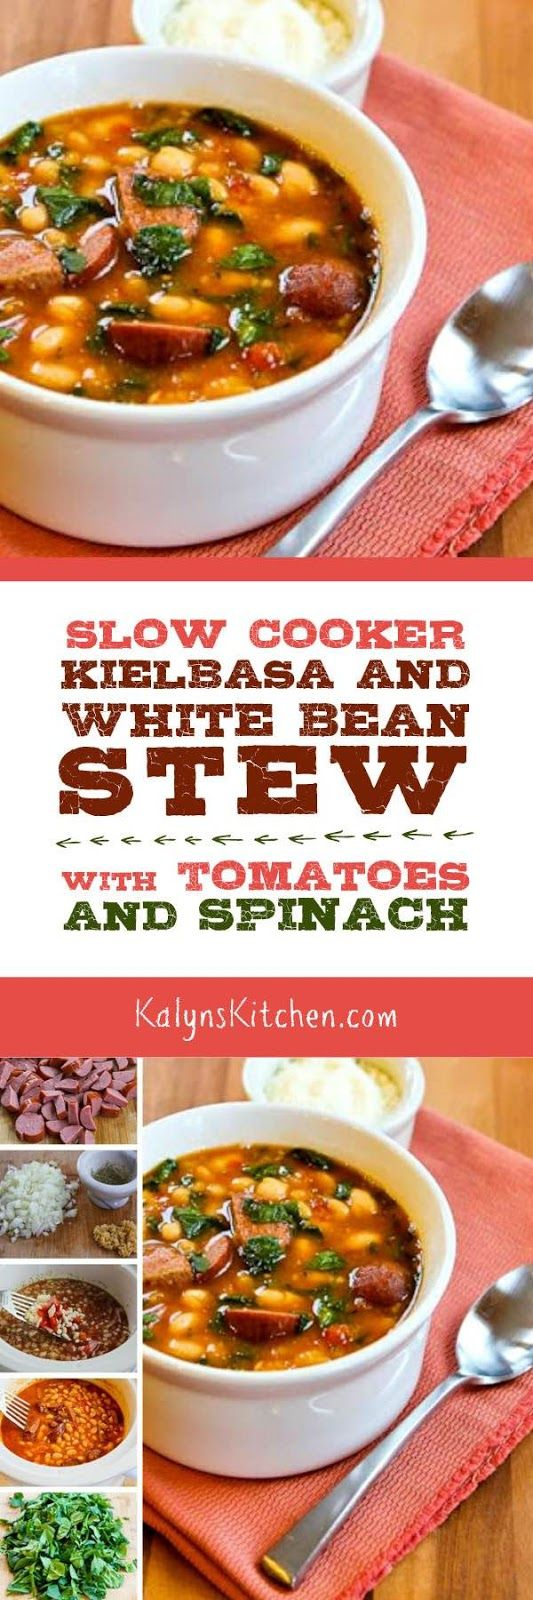 Slow Cooker Kielbasa and White Bean Stew with Tomatoes and Spinach starts with dried white beans that cook all day with the sausage; after work just add the spinach and dinner is ready in a flash. And this tasty soup is low-glycemic, gluten-free, and South Beach Diet friendly, and it freezes well. [found on KalynsKitchen.com] #SlowCooker #Crockpot #SlowCookerRecipe #SlowCookerBeanStew #SlowCookerSausageBeanStew